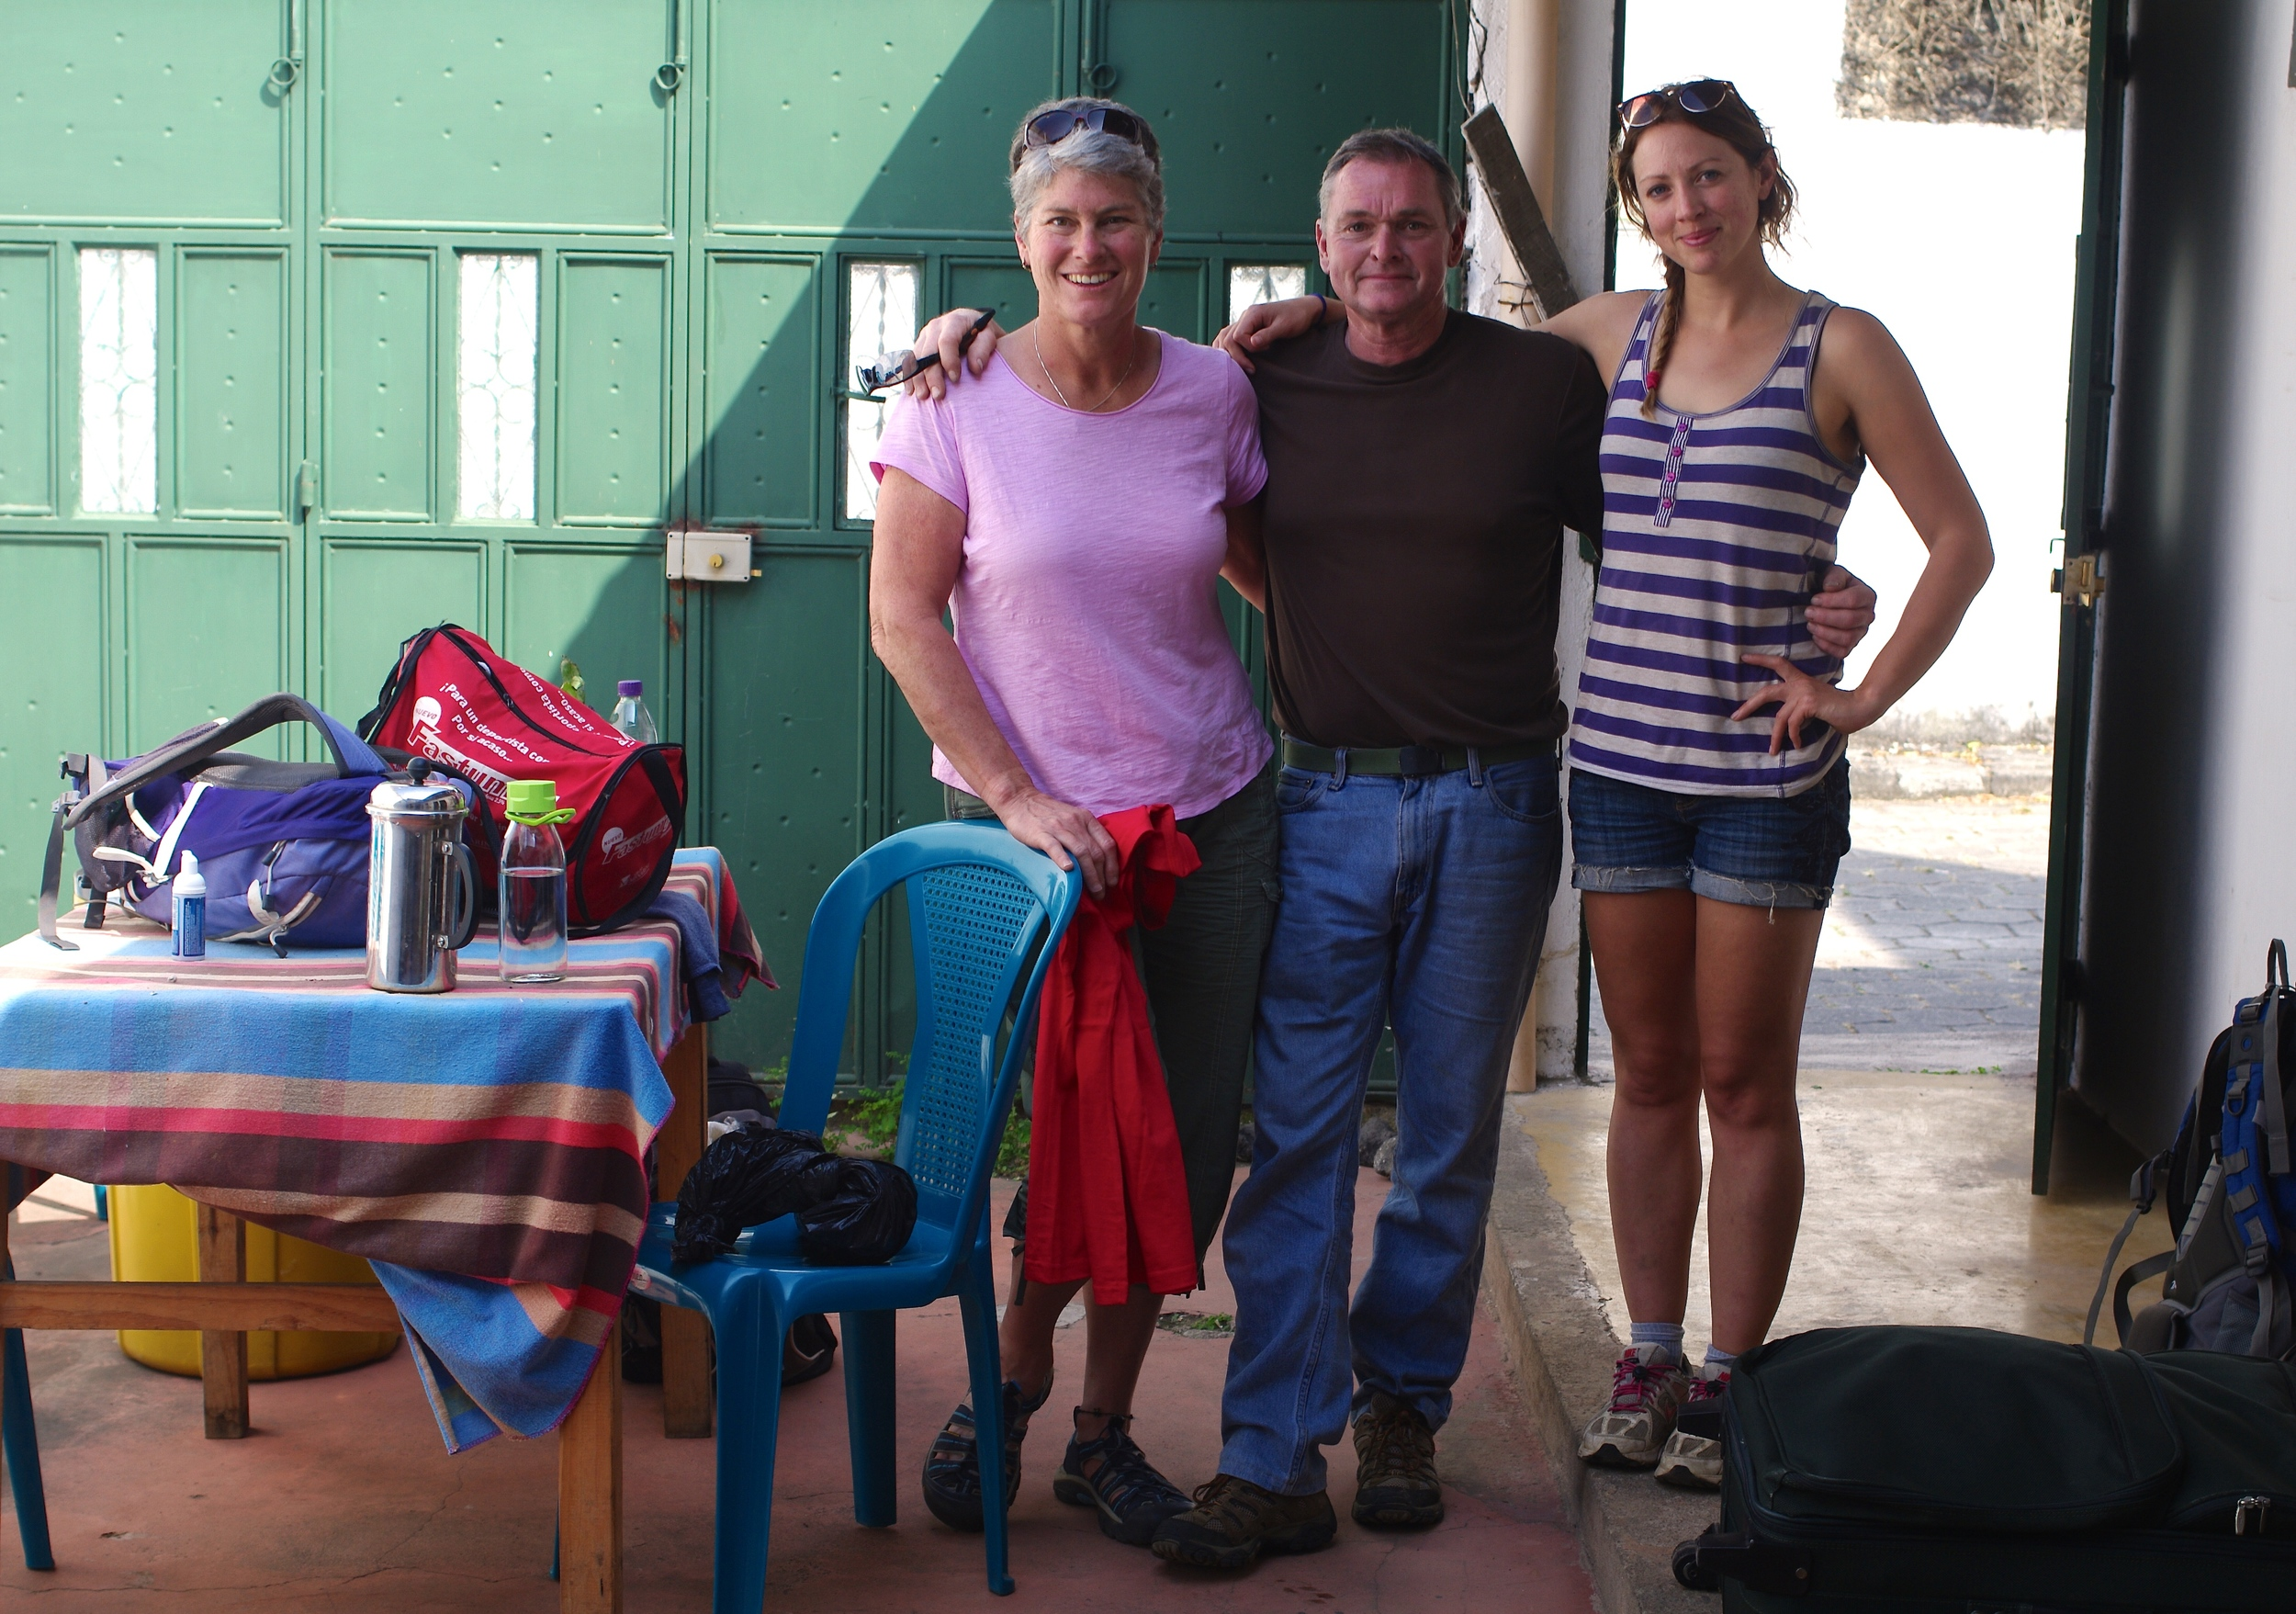 The couple preparing to leave for their roadtrip to Santa Anita with Director of Development, Lottie Riddle.